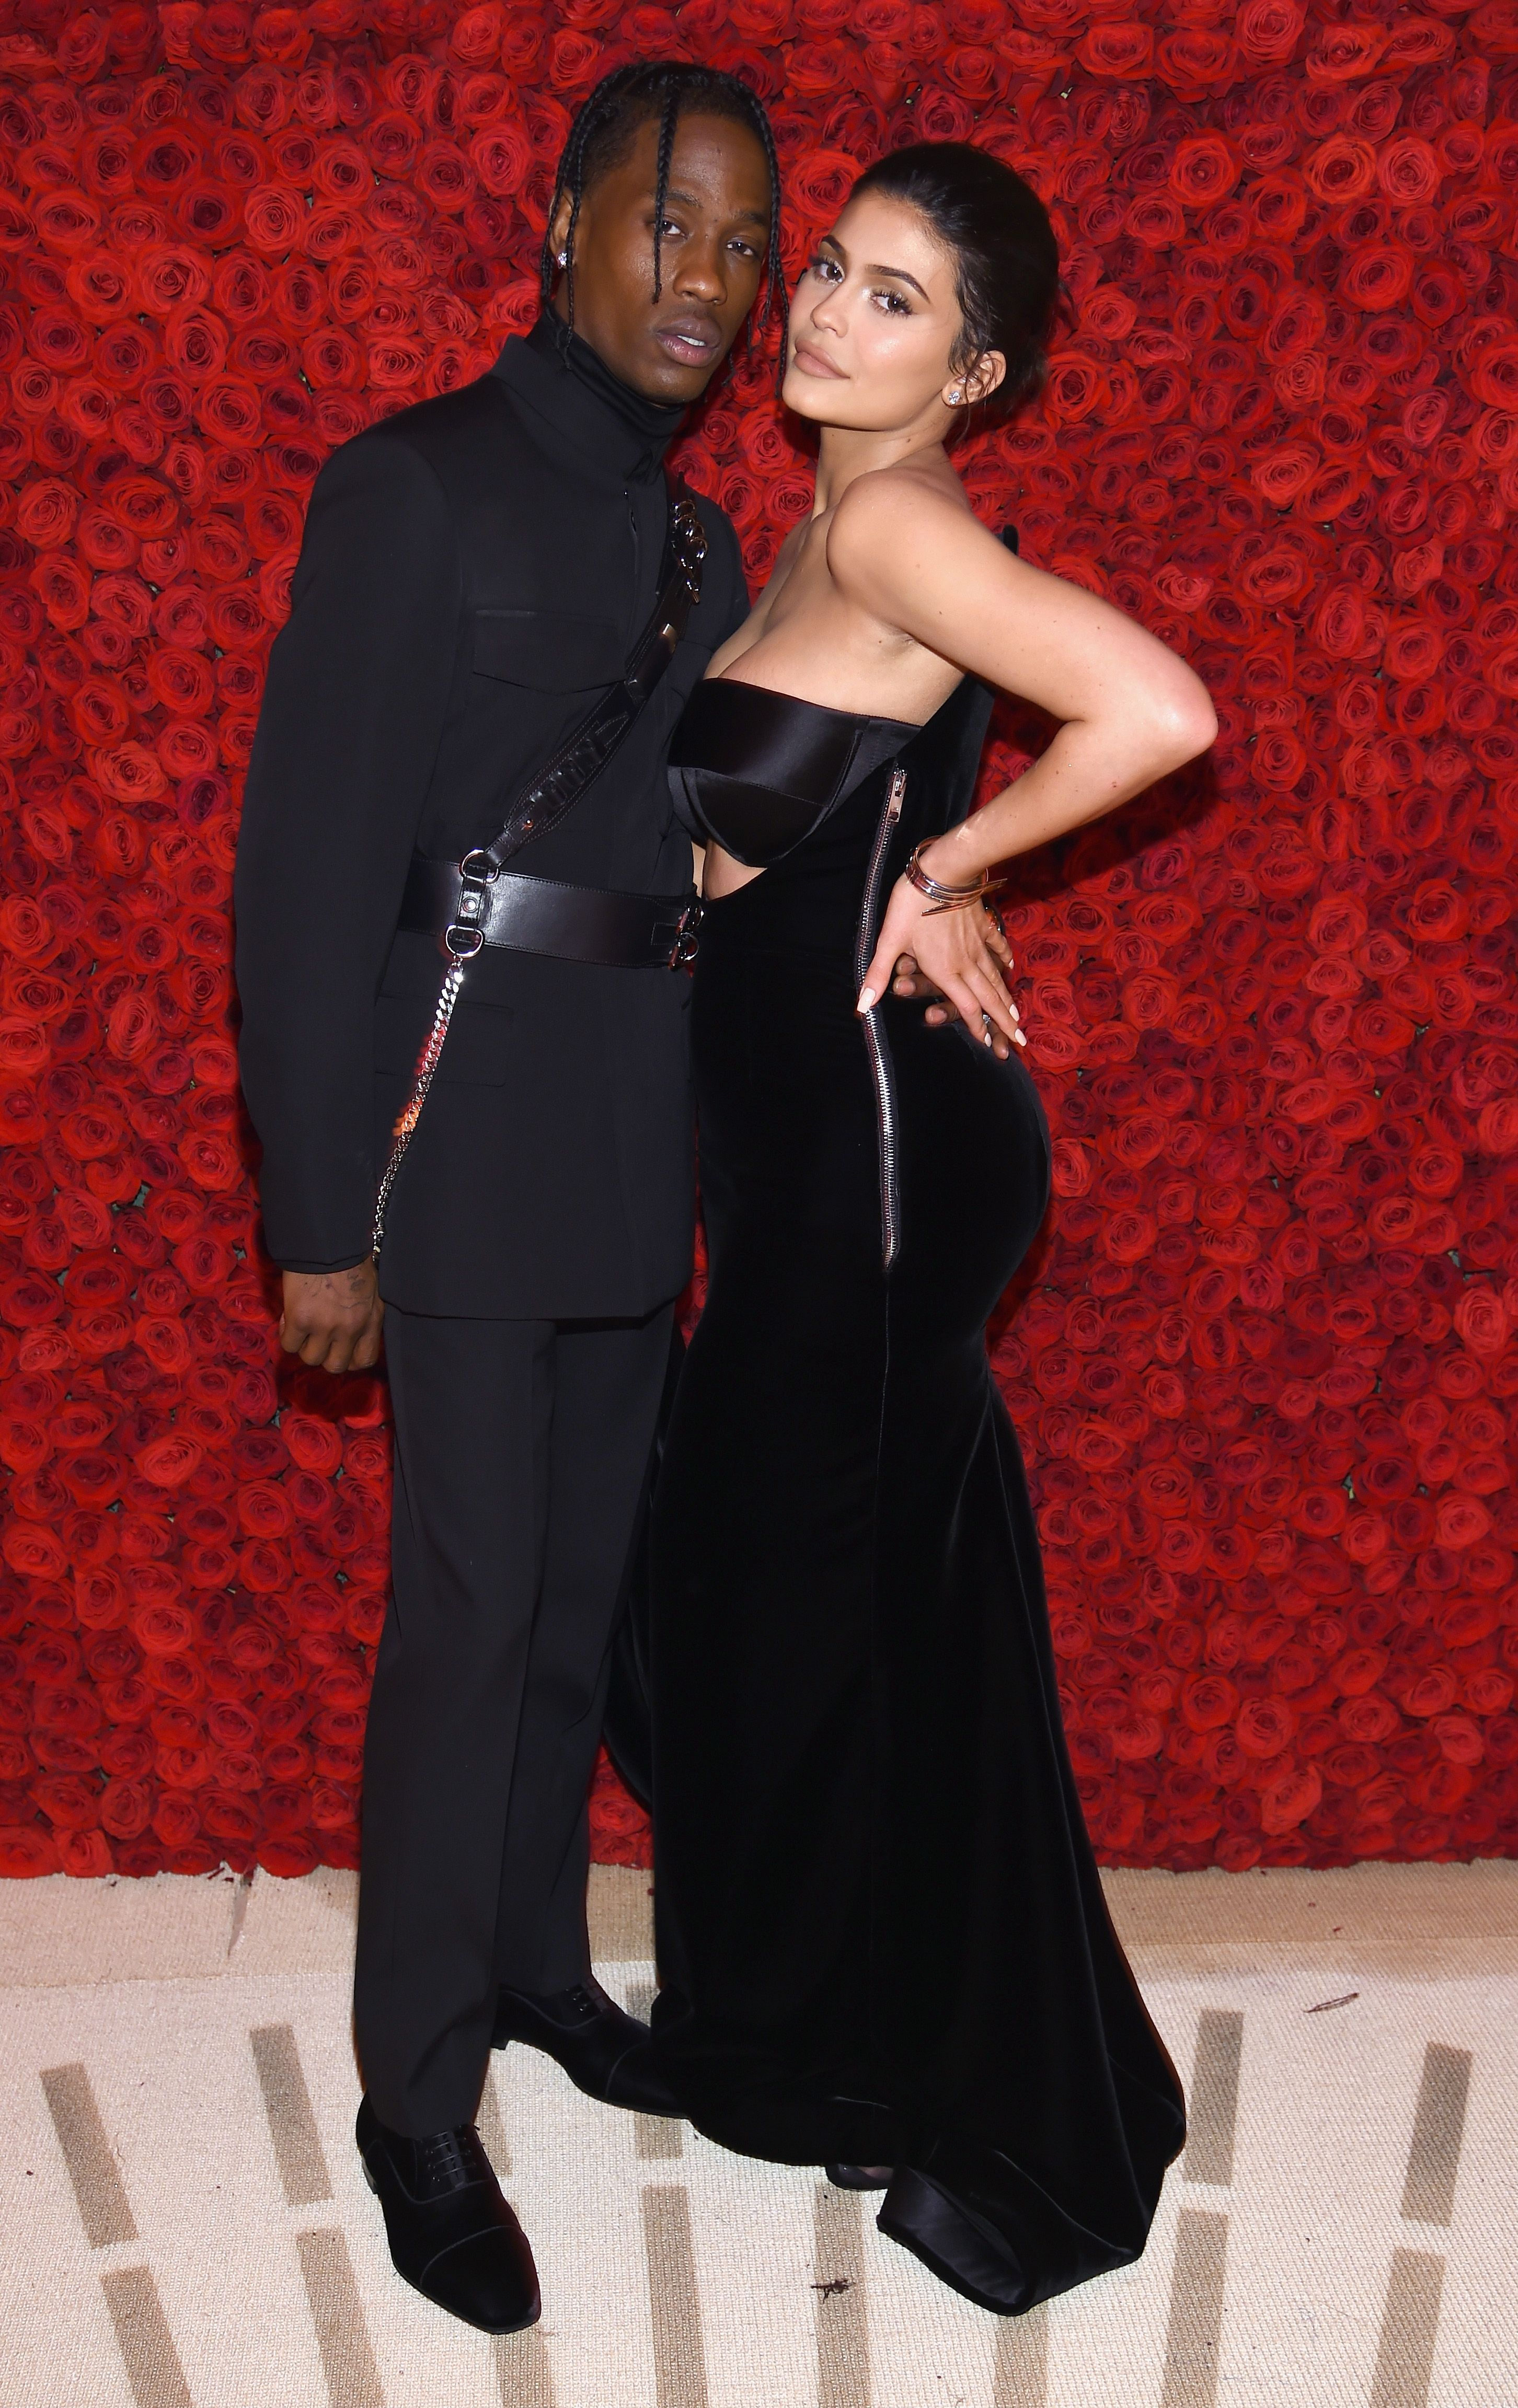 be6adaed11b6 What Kylie Jenner And Travis Scott's Body Language Reveals About Their  Relationship